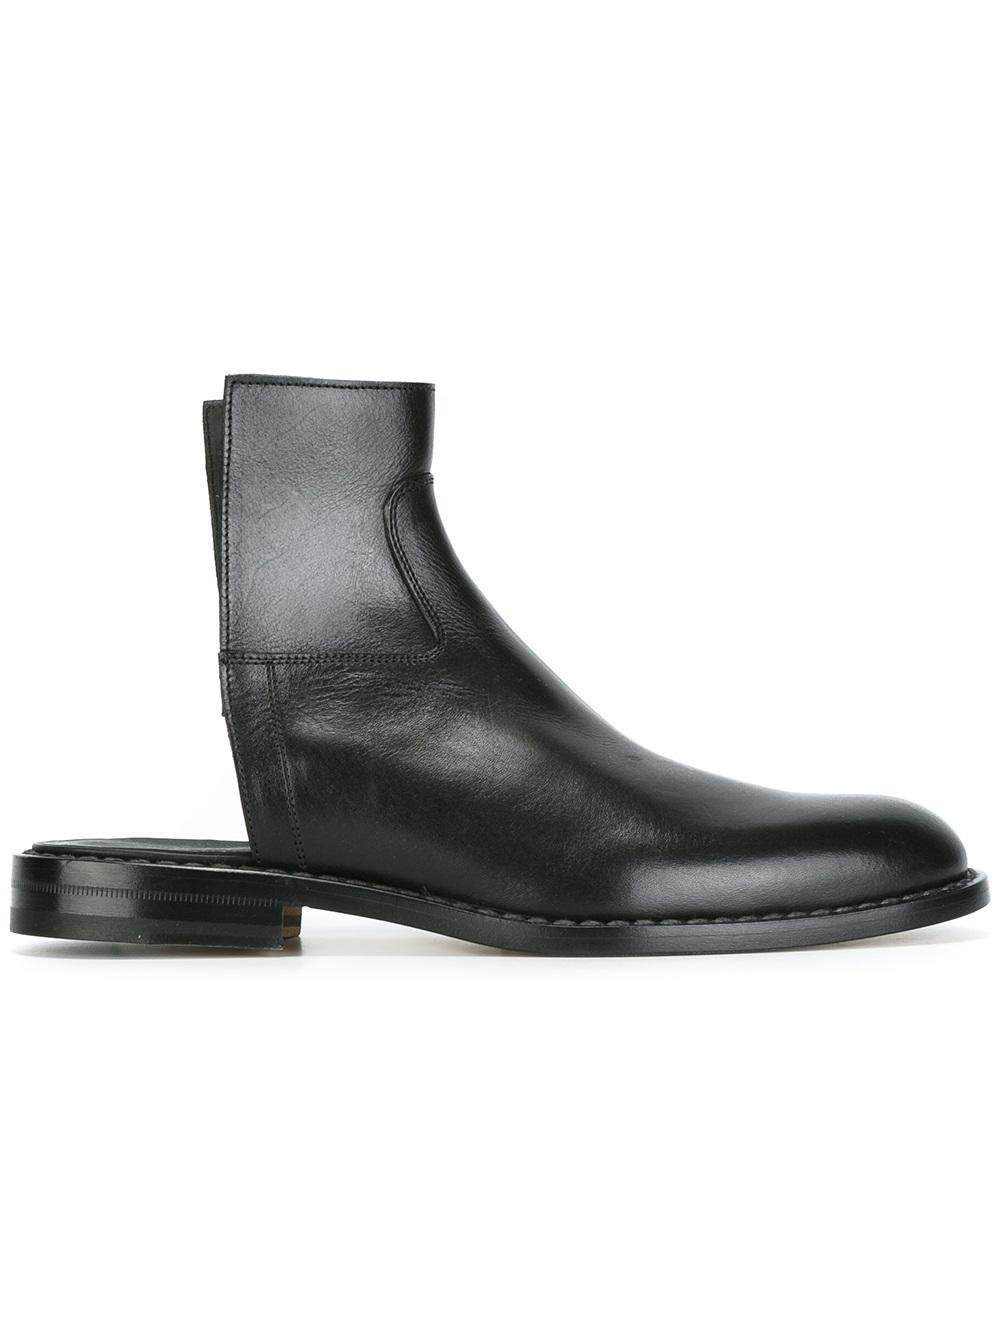 Lyst Maison Margiela Cut Off Boots In Black For Men